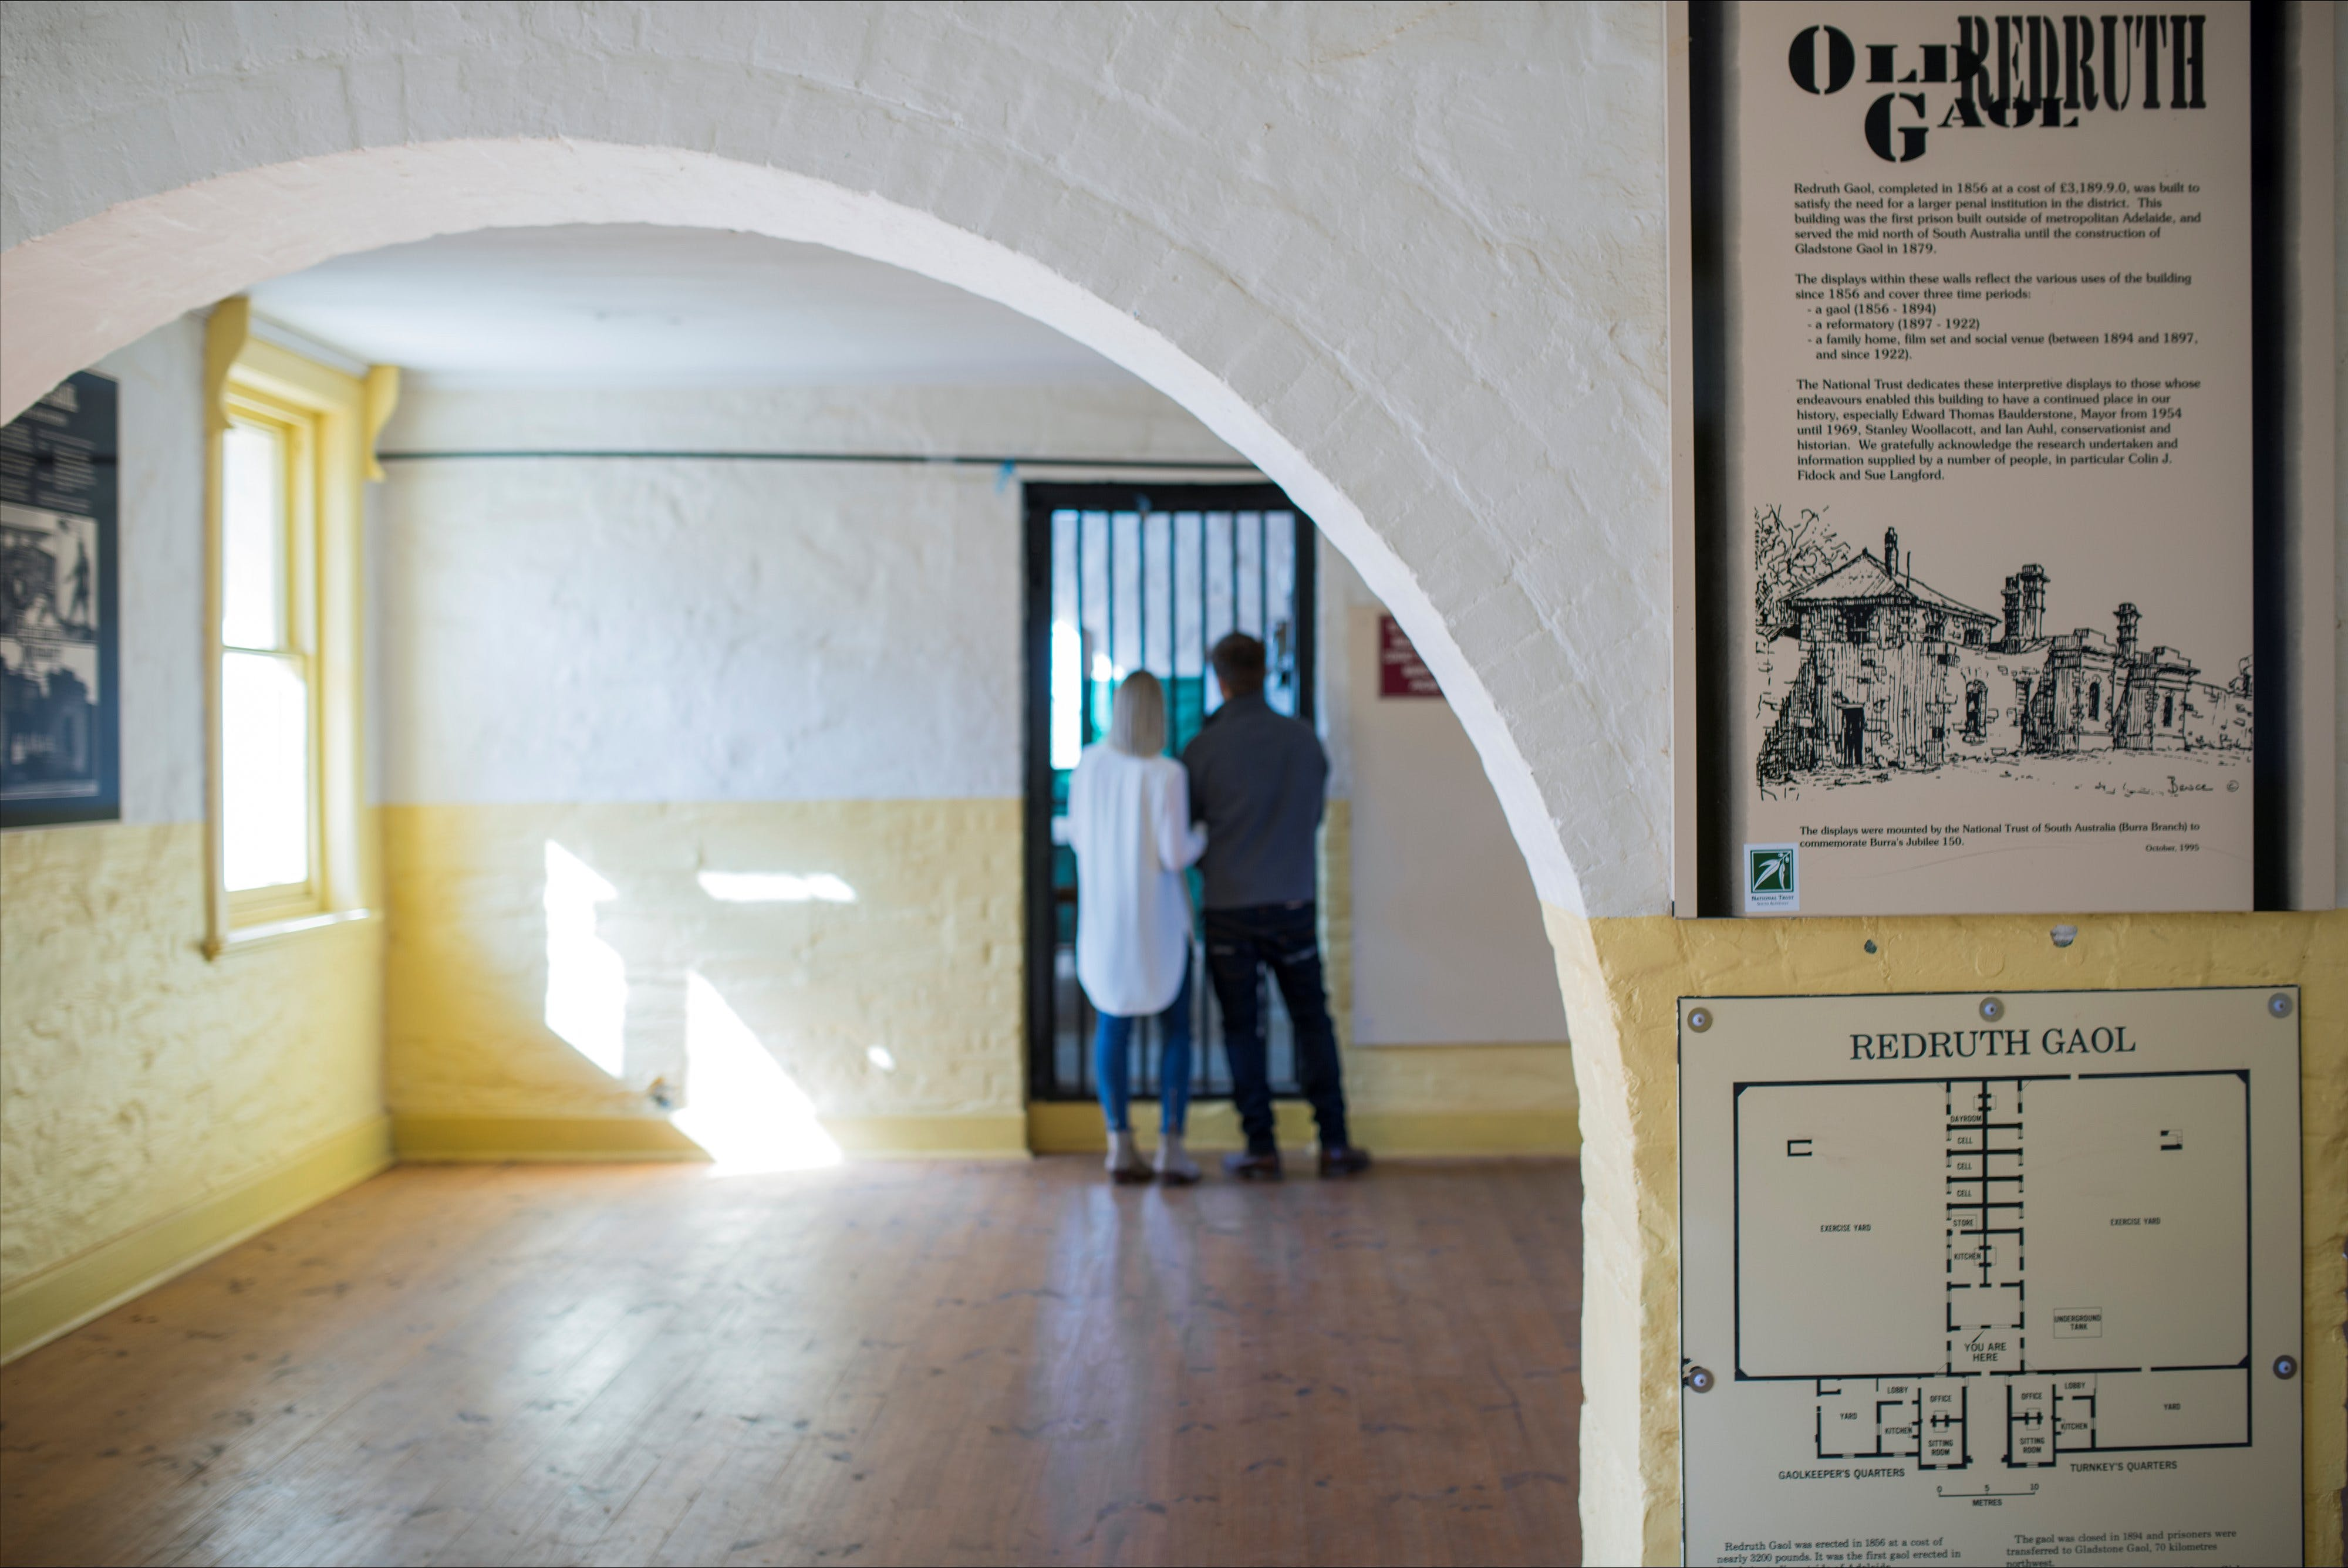 Redruth Gaol - Find Attractions